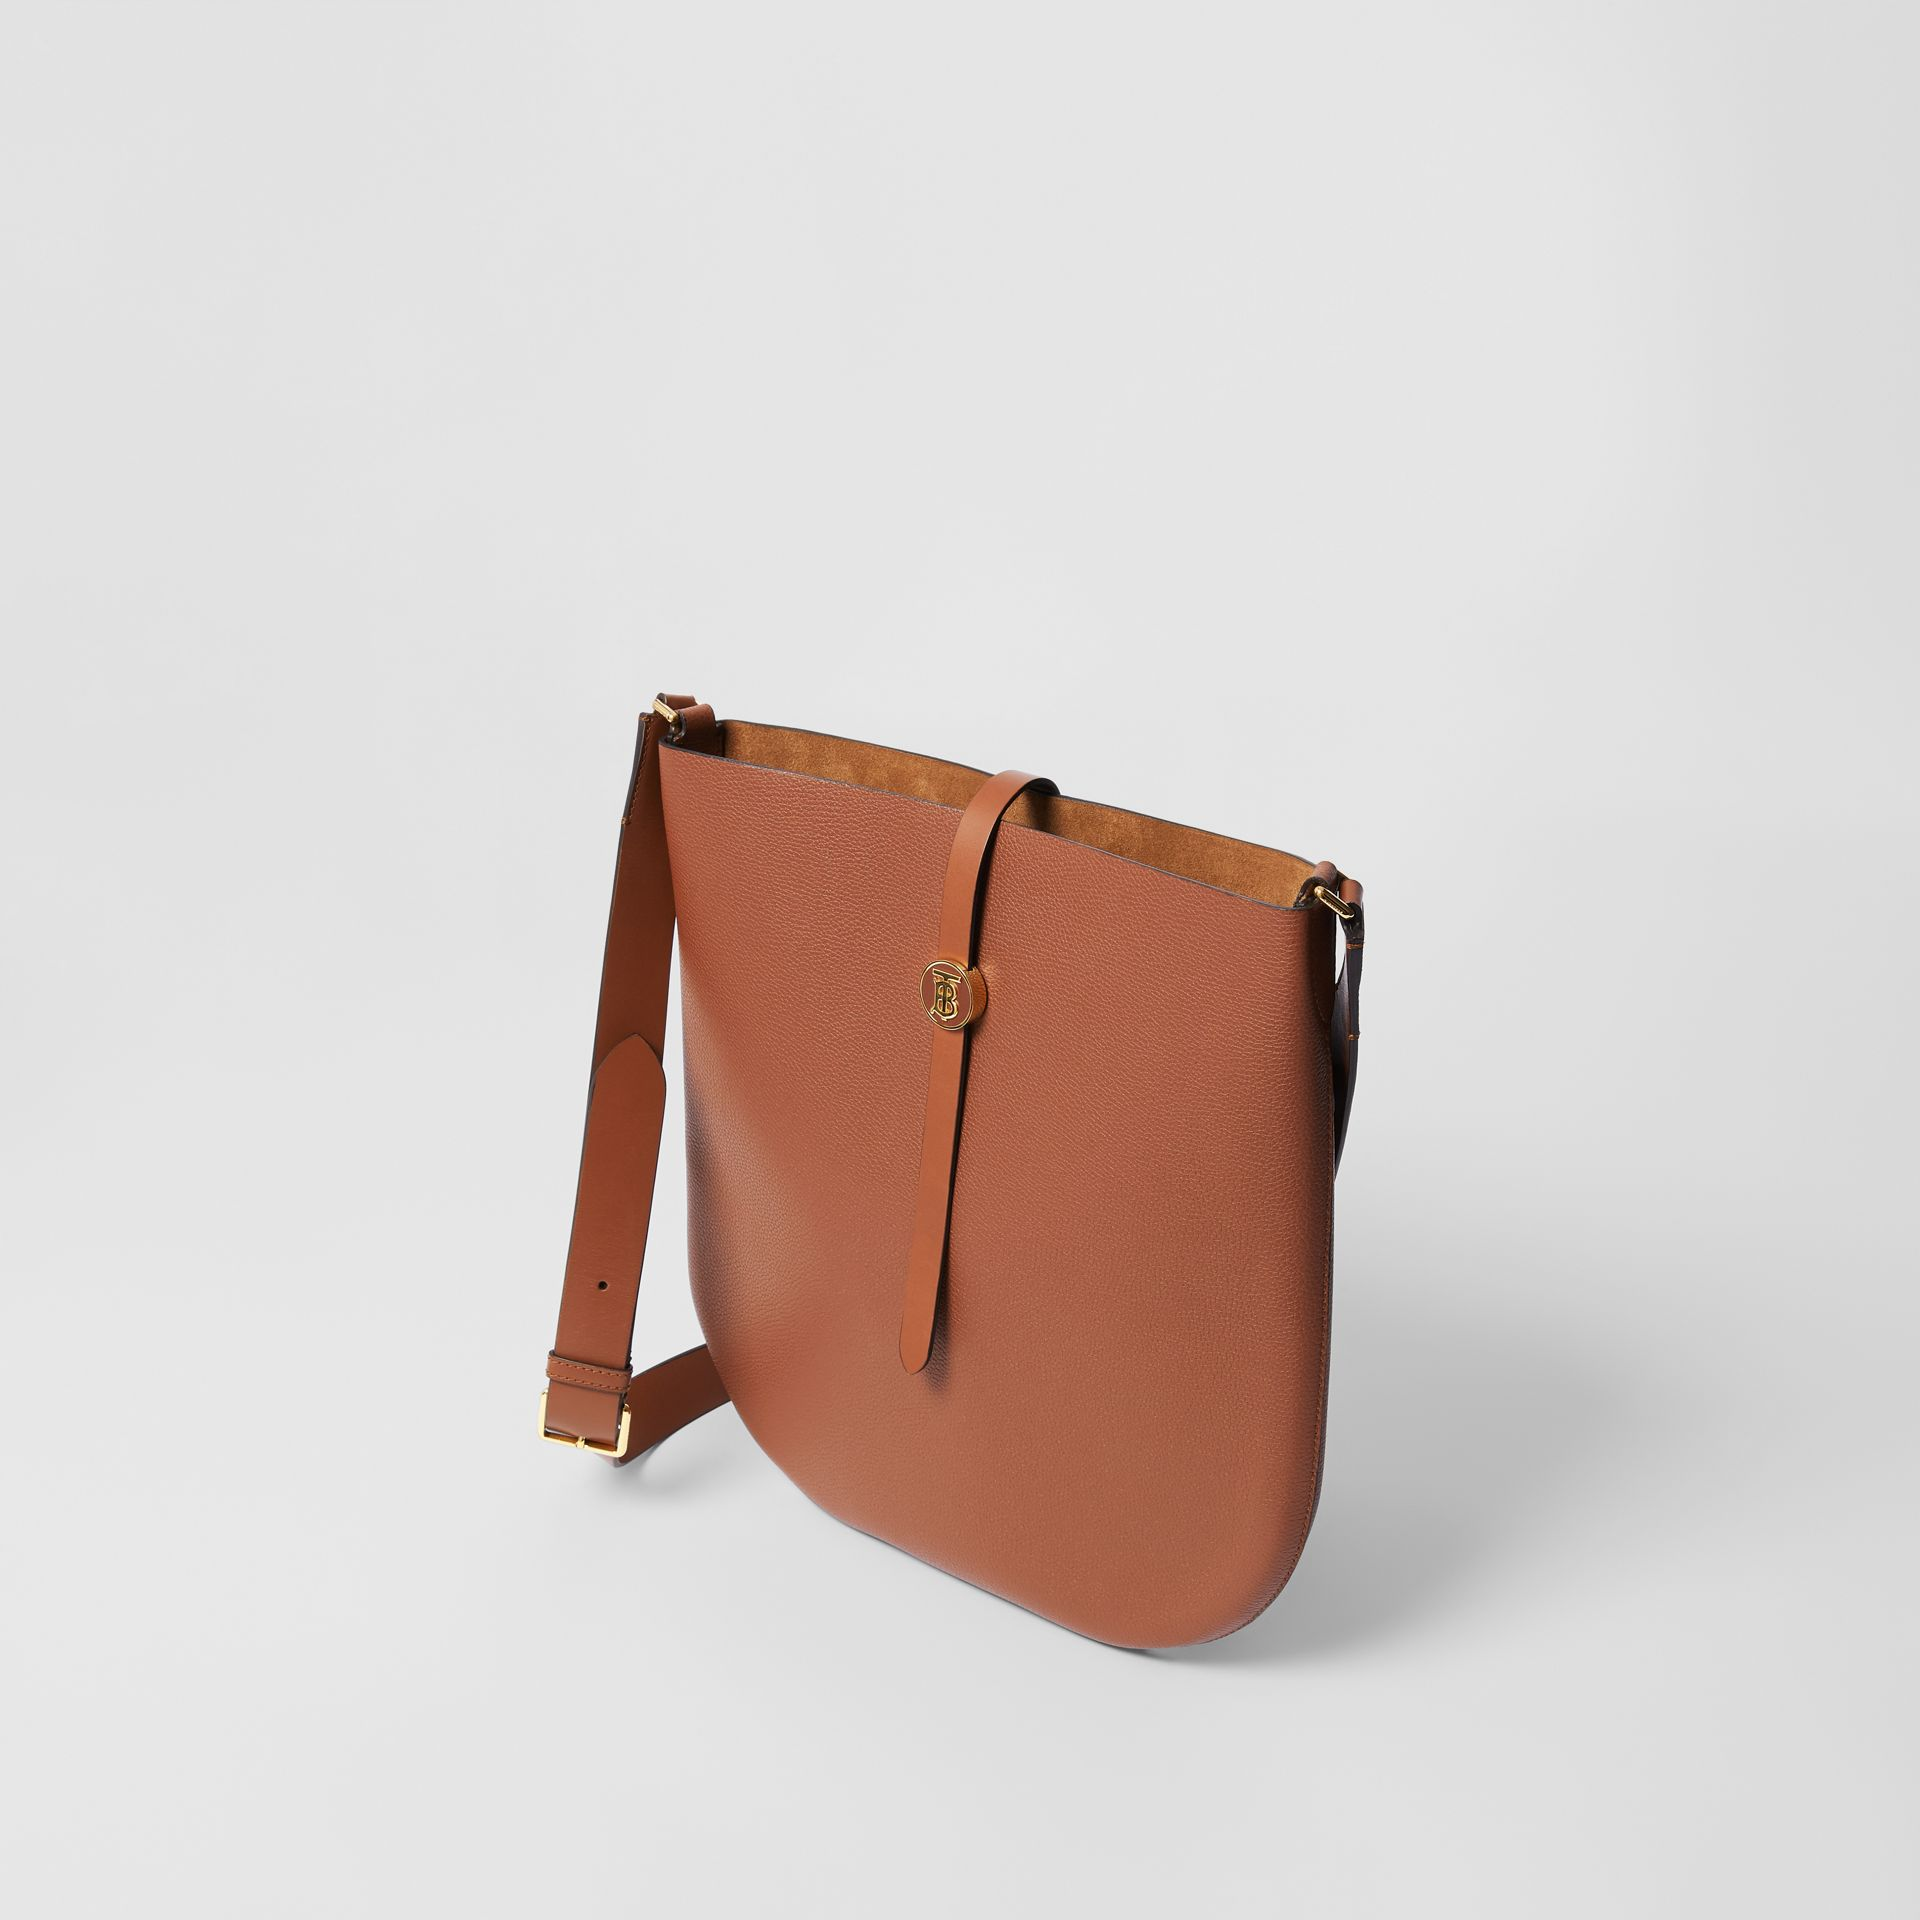 Grainy Leather Anne Bag in Tan - Women | Burberry United Kingdom - gallery image 2